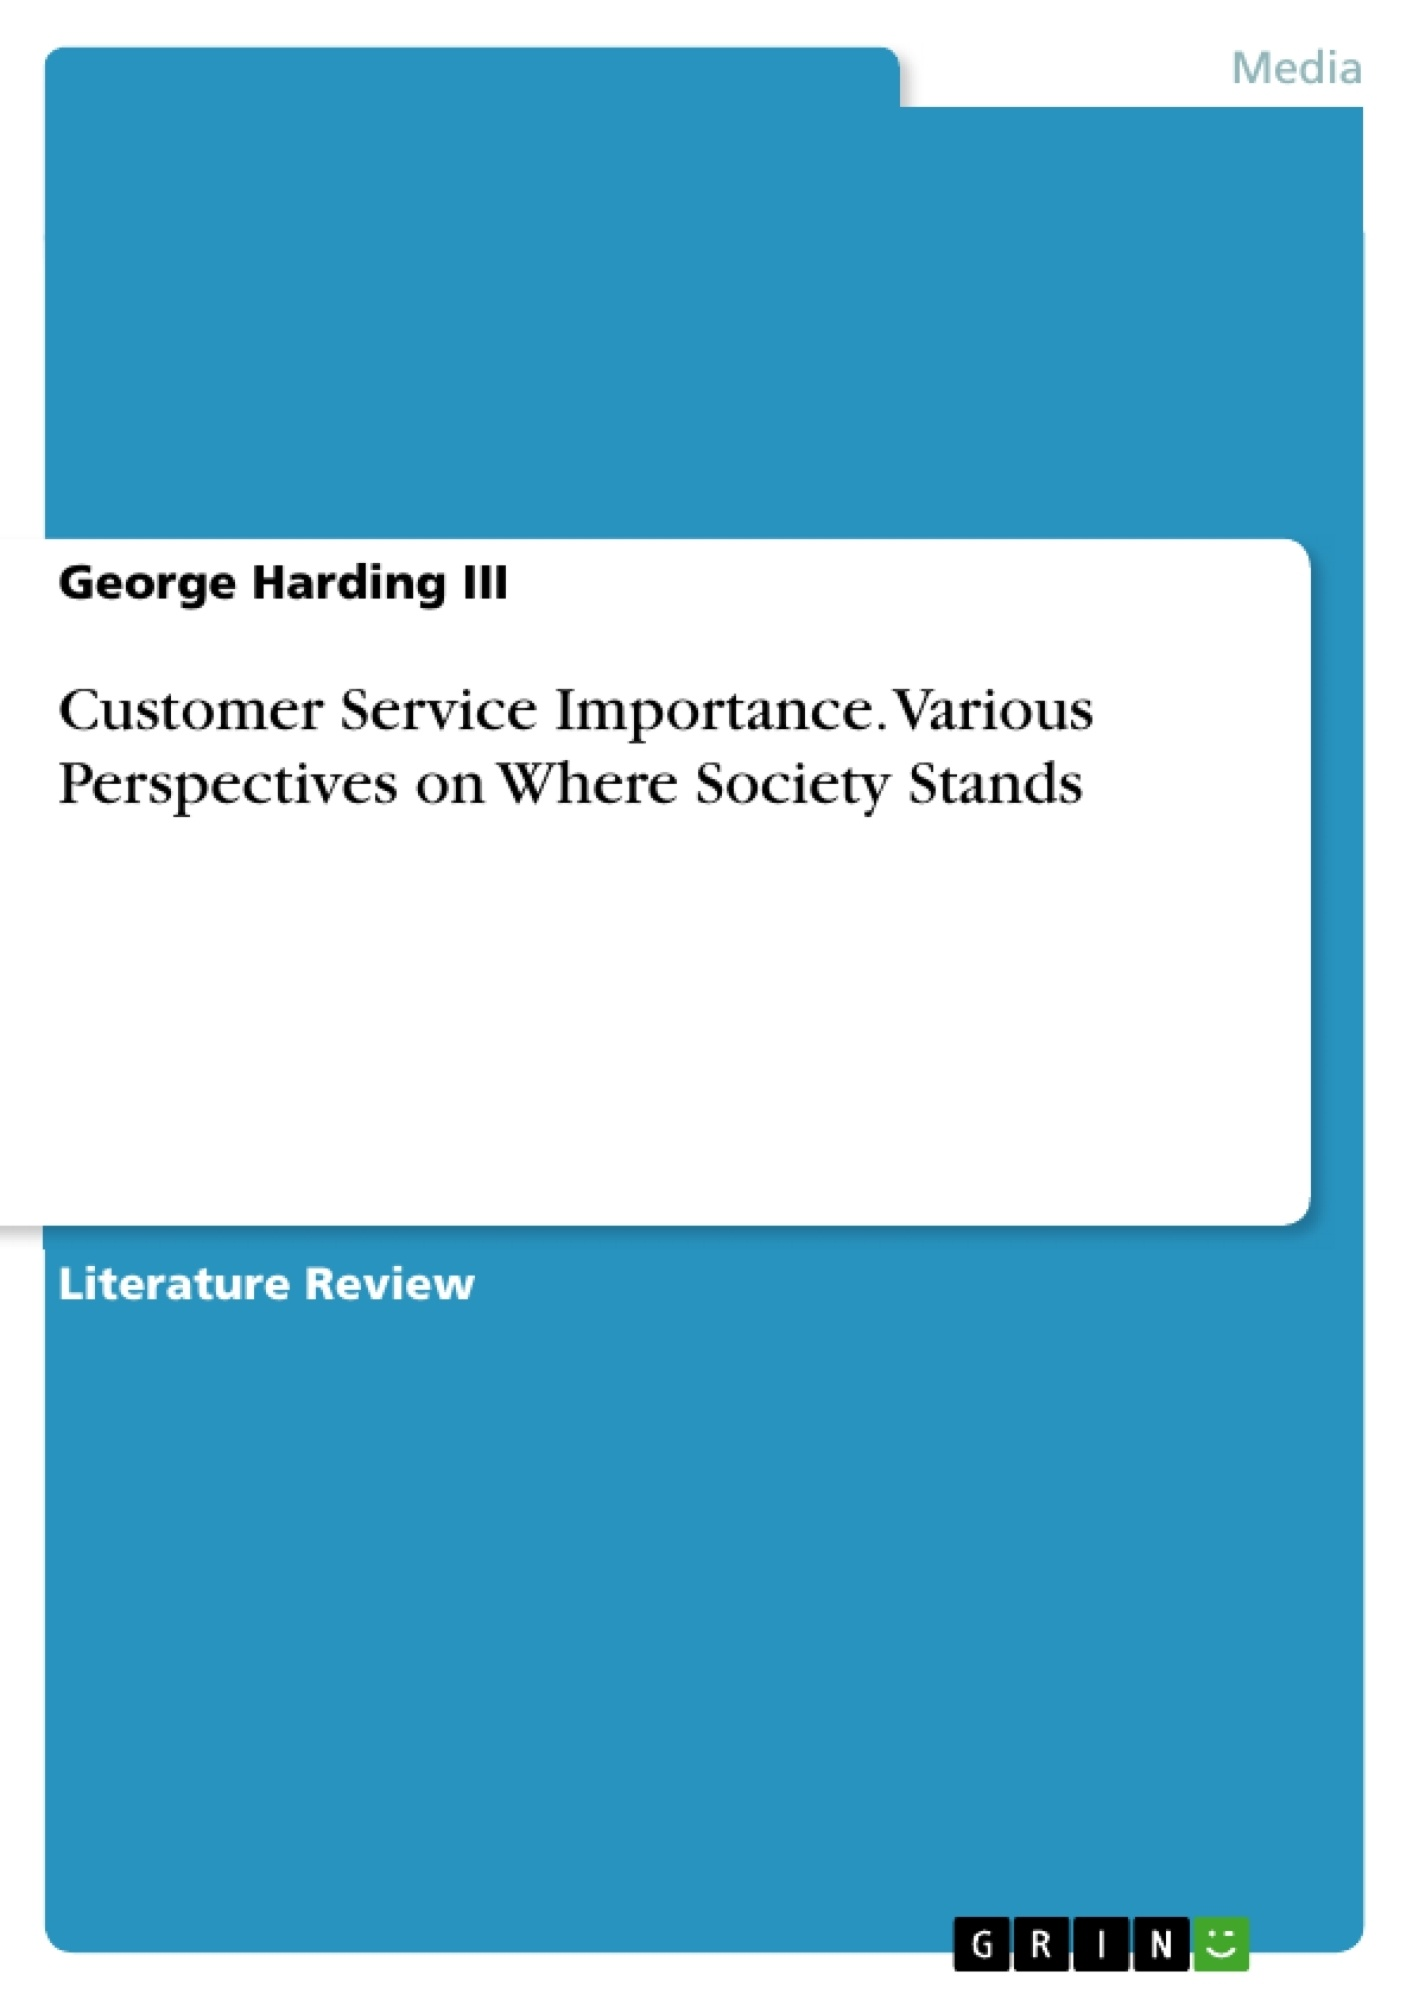 Title: Customer Service Importance. Various Perspectives on Where Society Stands